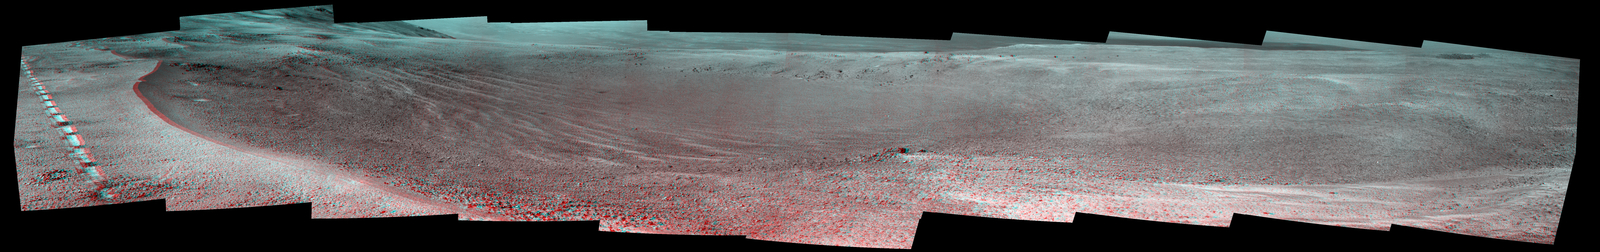 "This view of a 90-foot-wide, relatively fresh crater on Mars, ""Orion Crater,"" combines images from the left eye and right eye of the Panoramic Camera (Pancam) on NASA's Mars Exploration Rover Opportunity. It appears three-dimensional when seen through blue-red glasses with the red lens on the left."